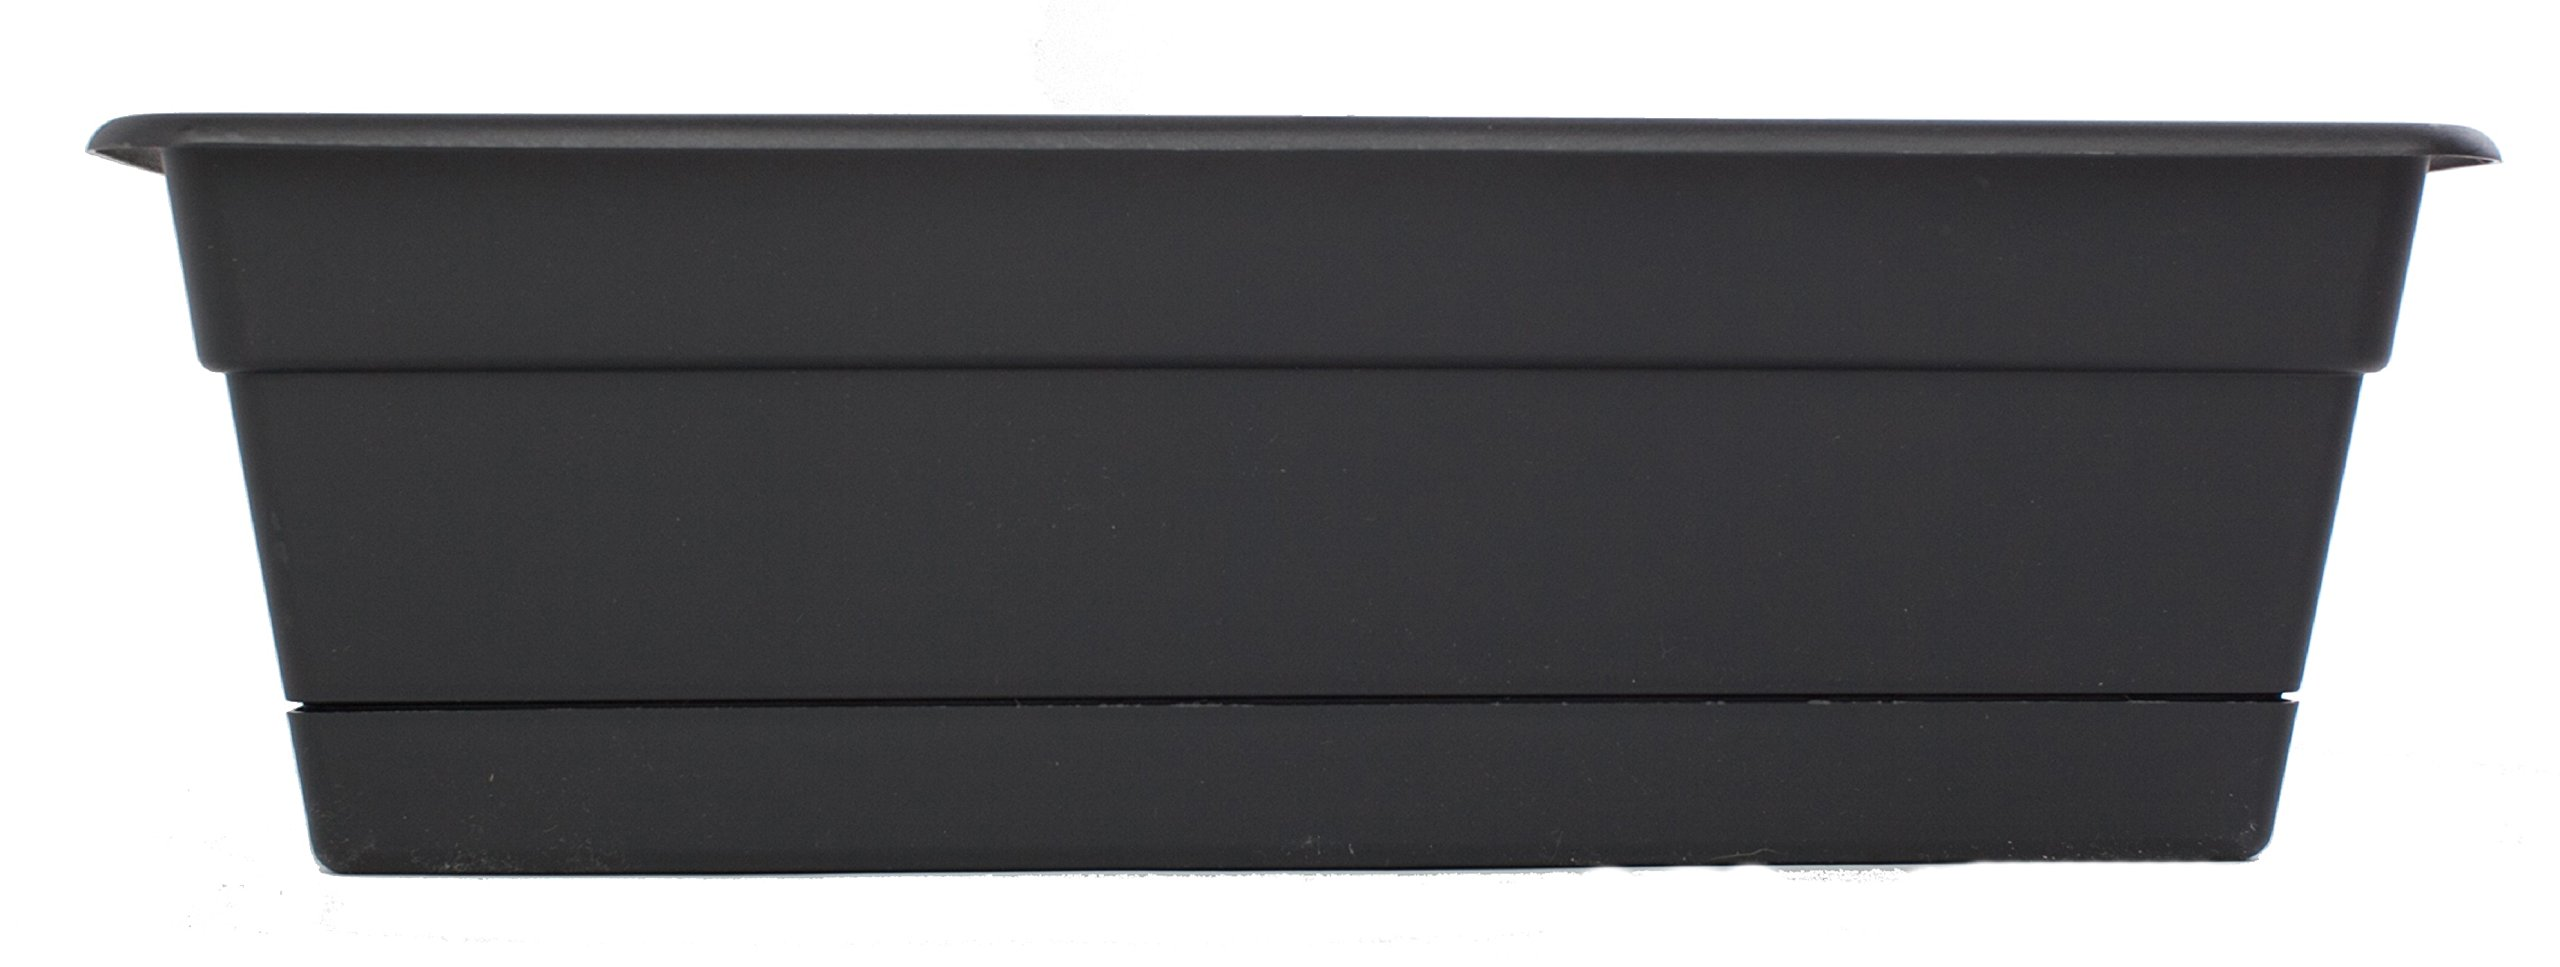 Bloem DCBT24-00 Dura Cotta Plant Window Box, Black